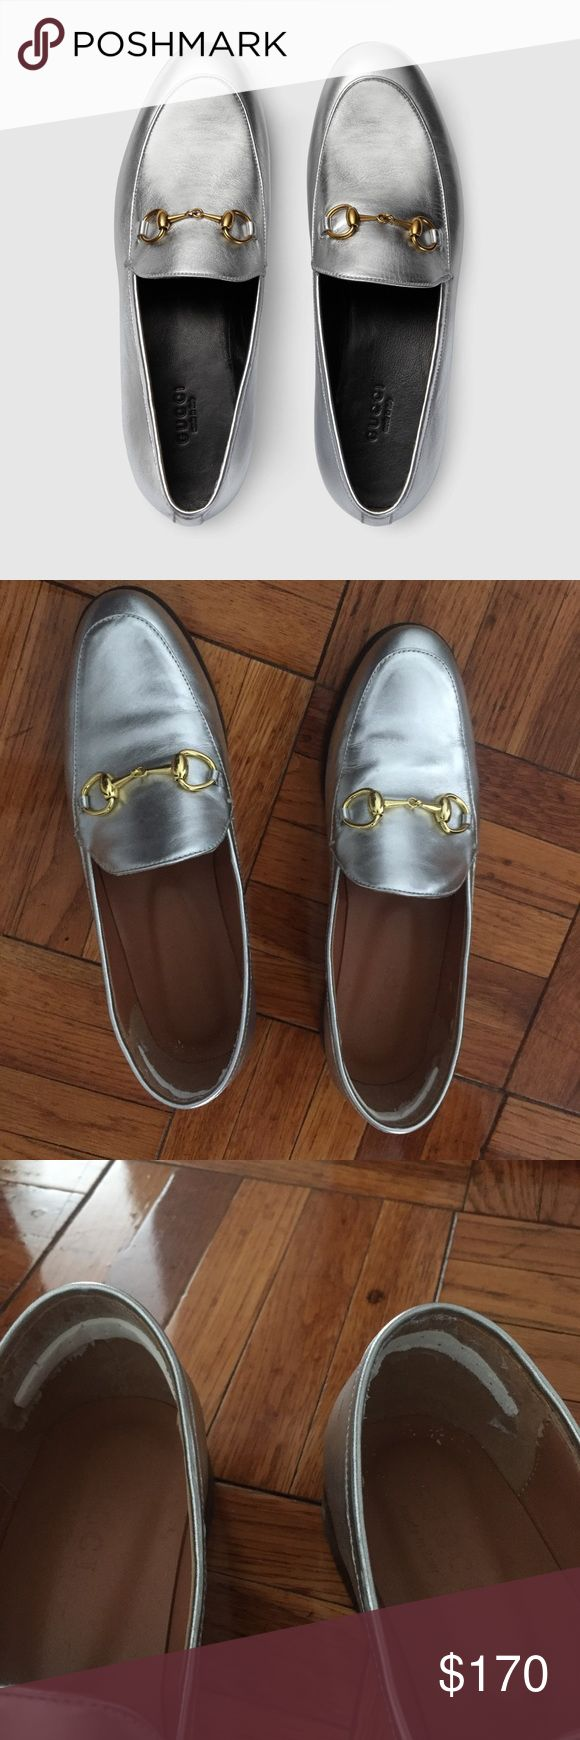 Gucci Horsebit Loafers Silver 38/8 Worn a few times, I used heel stickers to make them feel smaller but they didn't work. Price reflects authenticity. Genuine leather!! Really bummed that they're way too big for me. It's a gorgeous pair and really on trend. Please look at the details in the images, they even have the stamps on the bottom Gucci Shoes Flats & Loafers